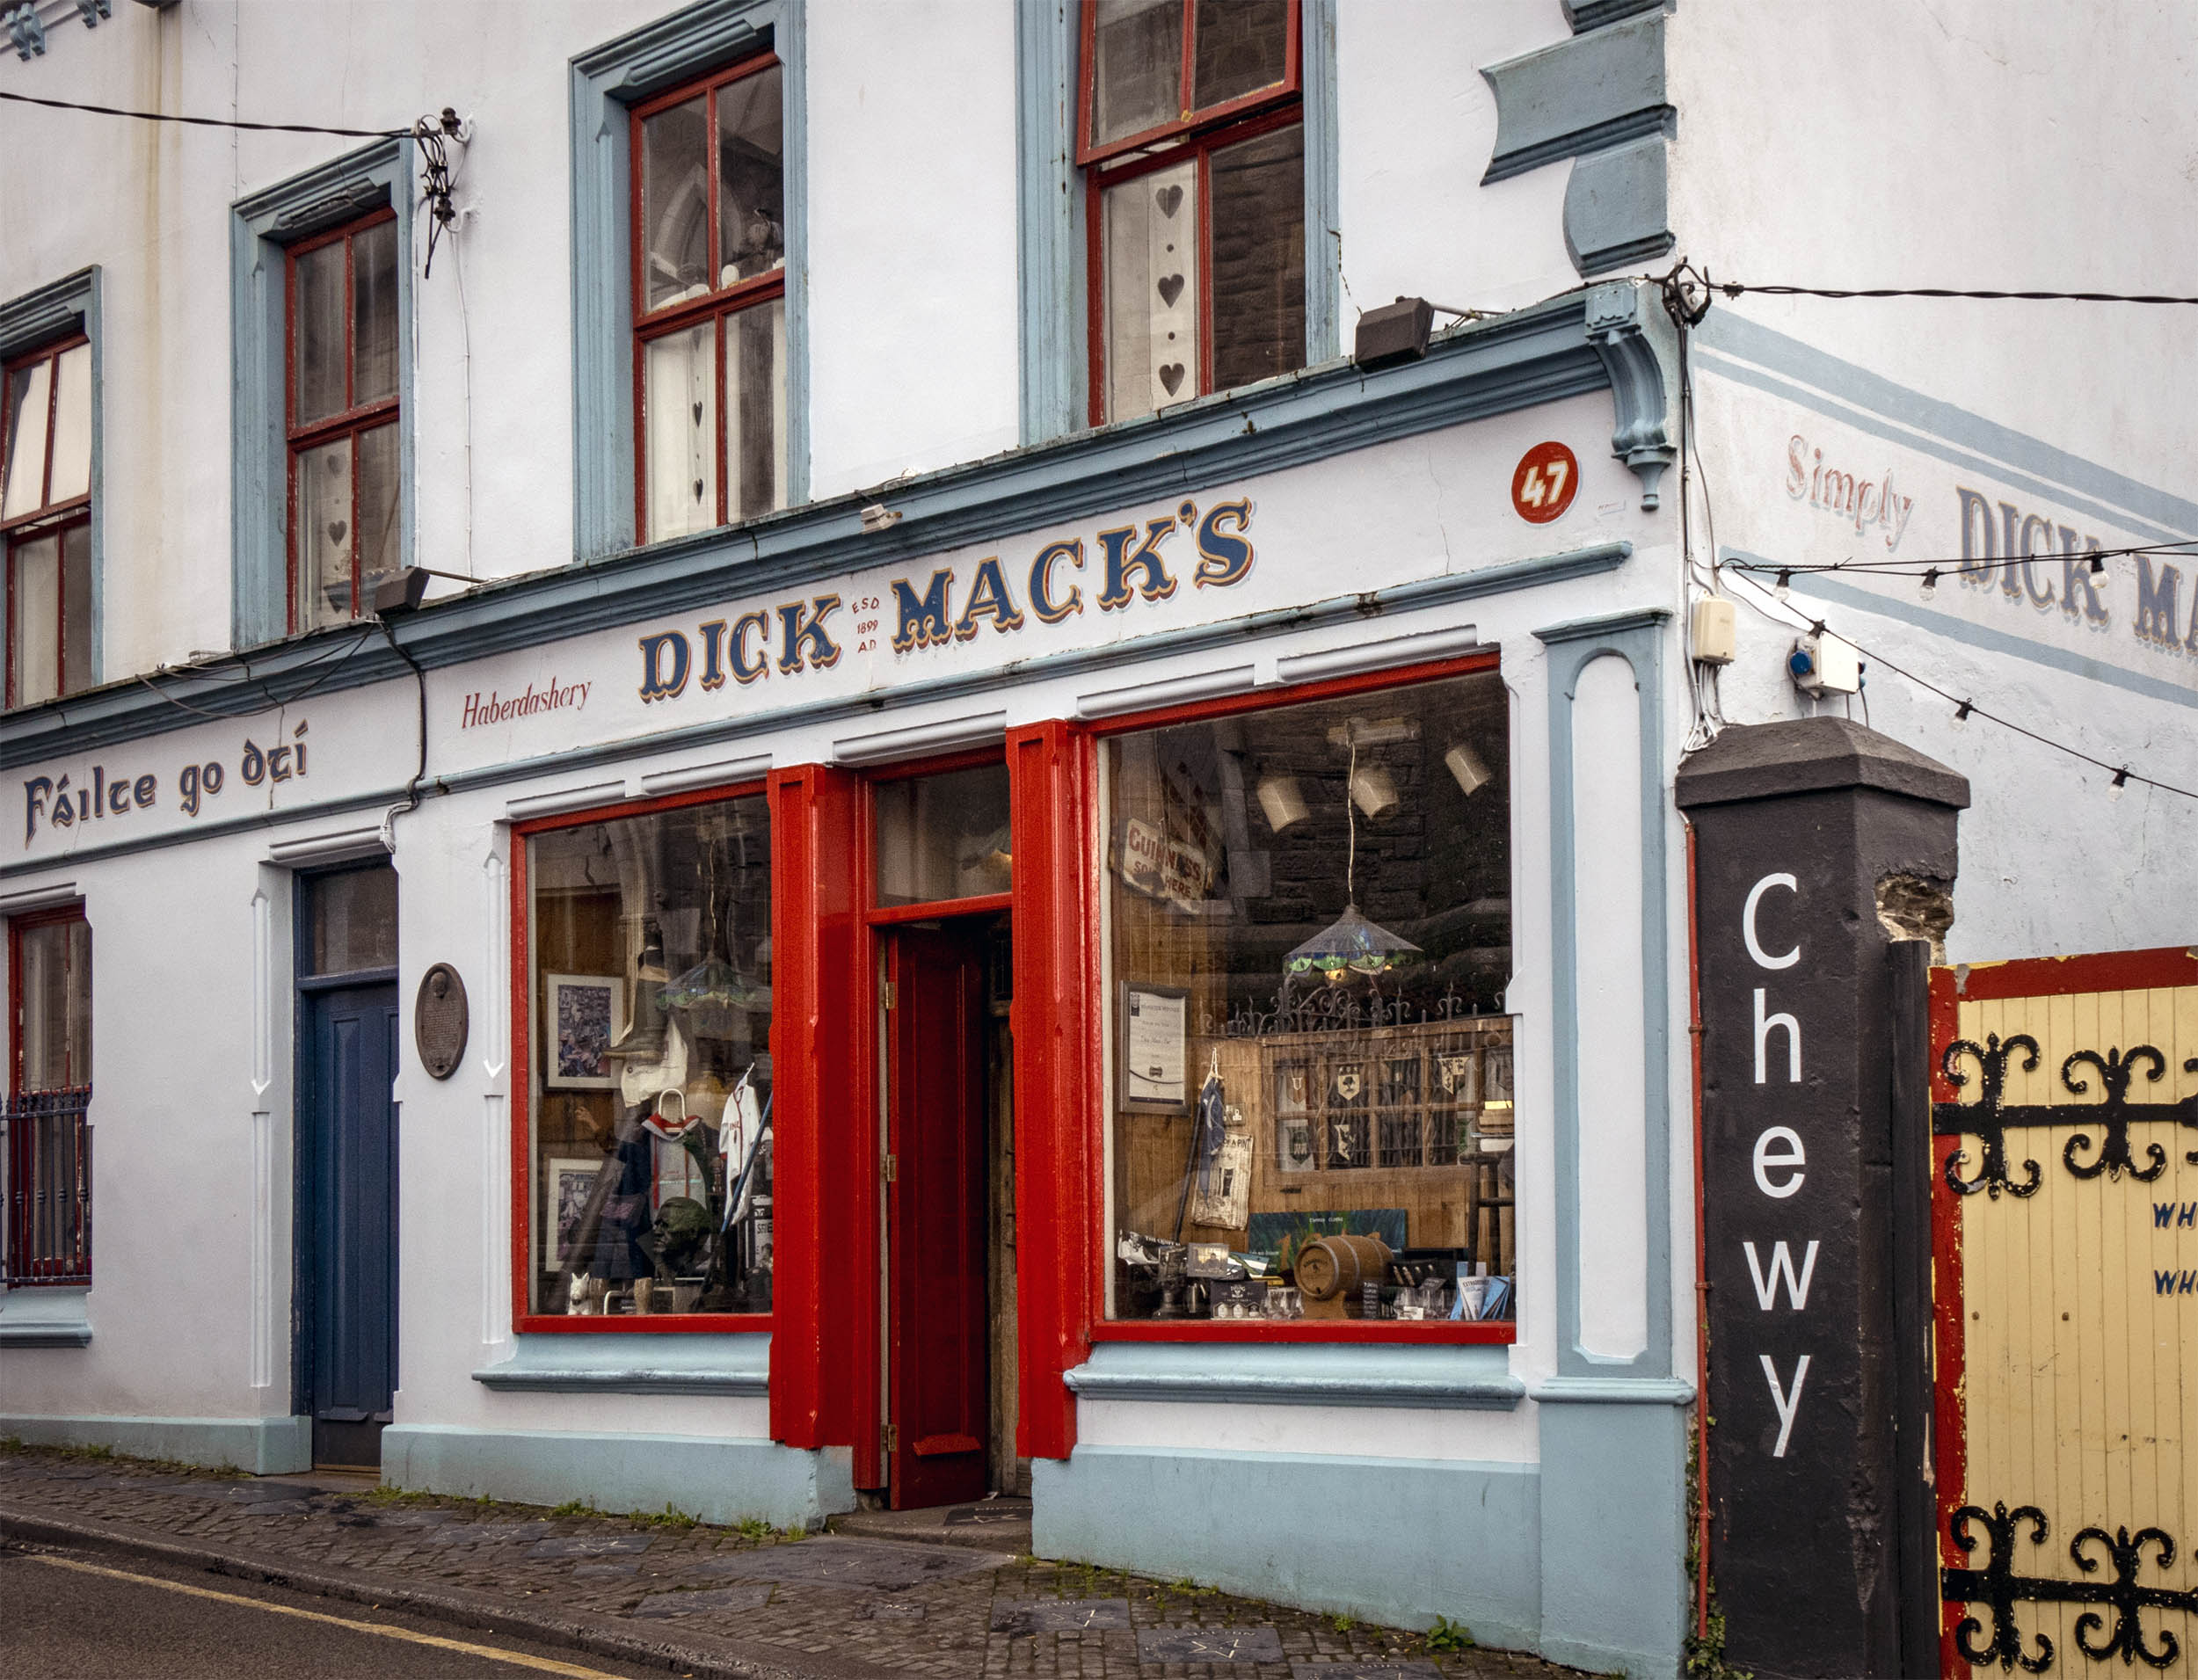 Top Pubs in Dingle, Ireland